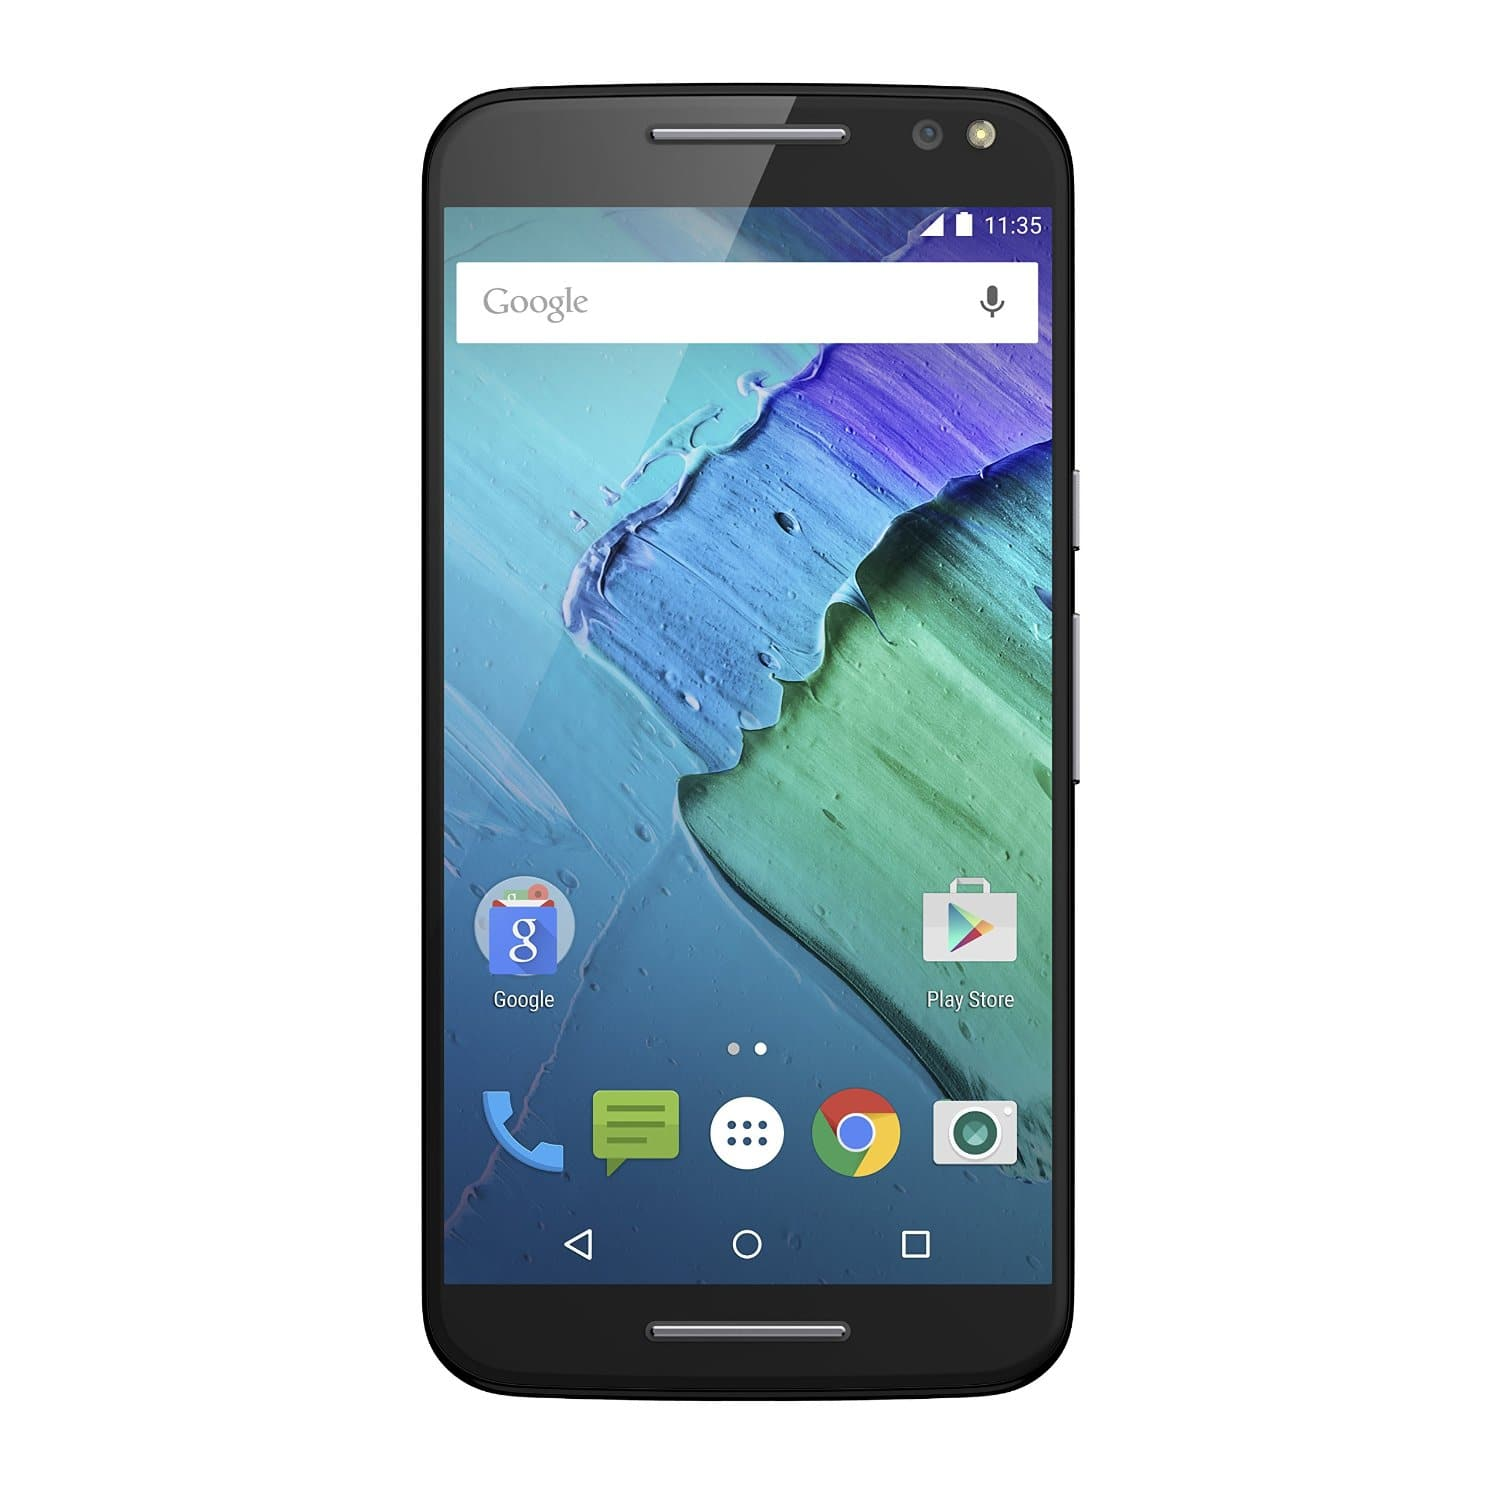 Moto X Pure Unlocked 16GB for $299 and $349 for 32 GB @ Best Buy